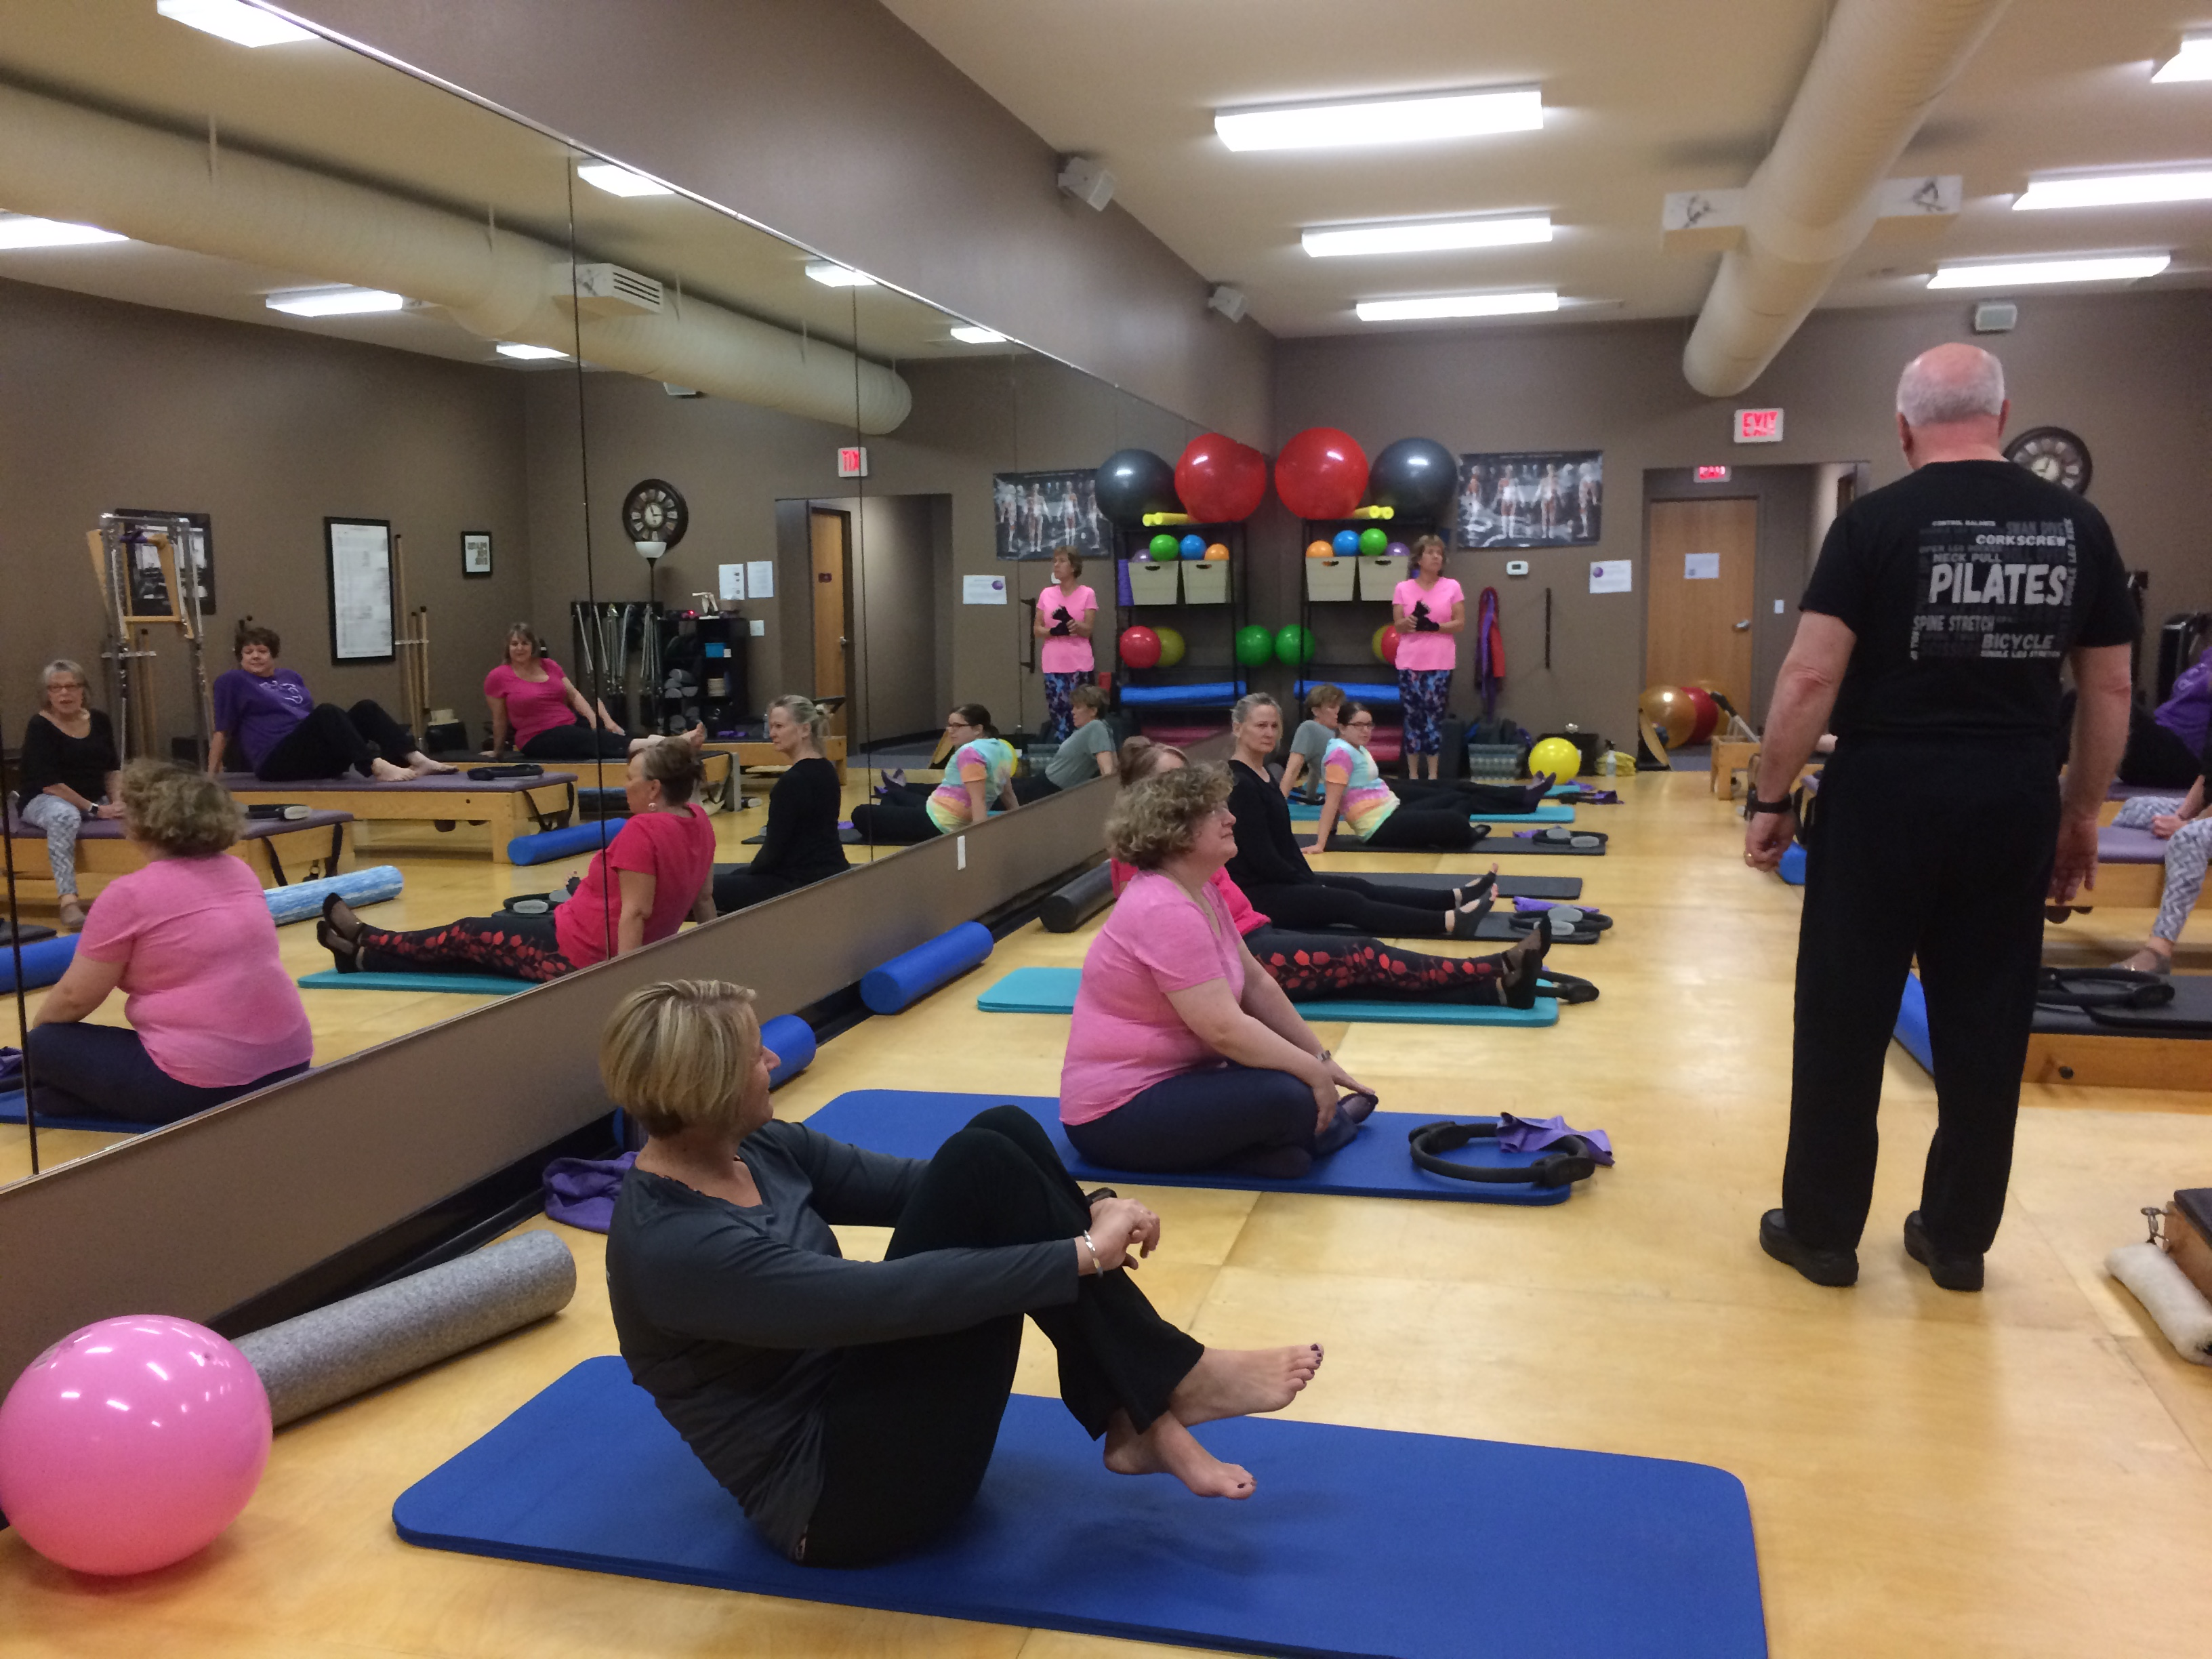 picture of people doing pilates